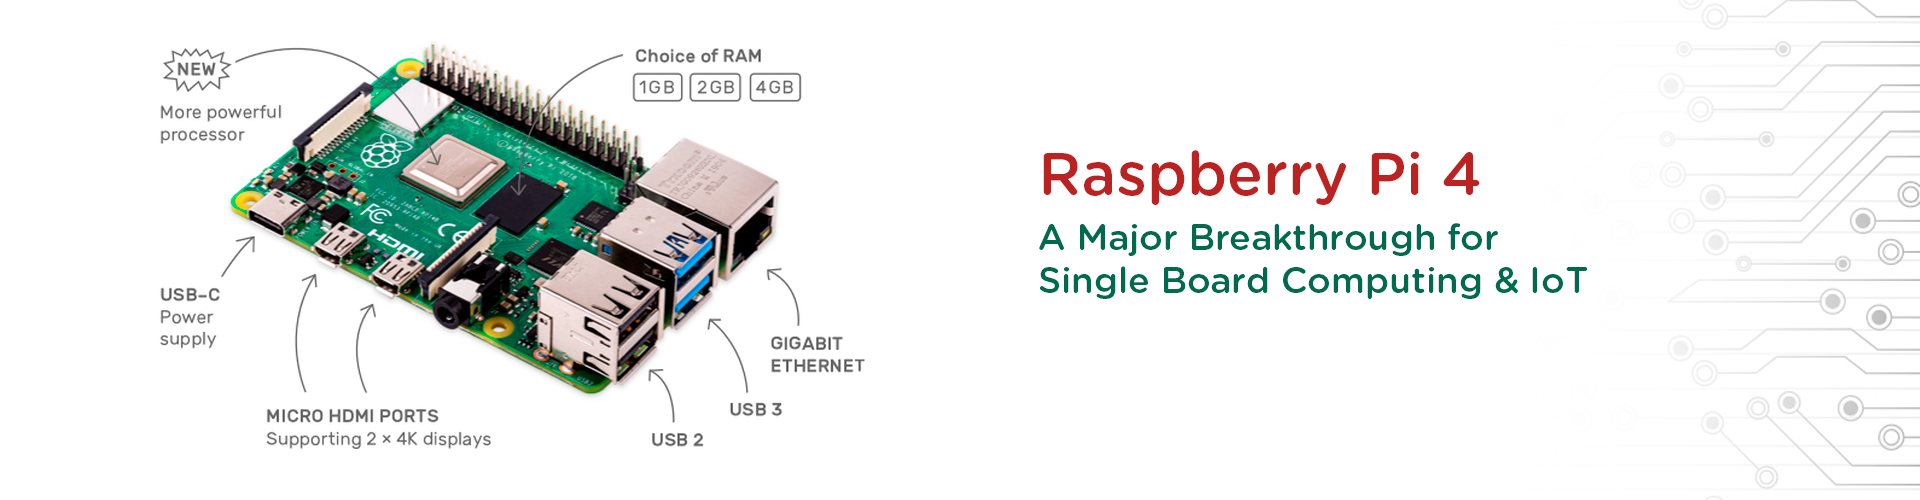 Raspberry Pi 4 for Single Board Computing & IoT